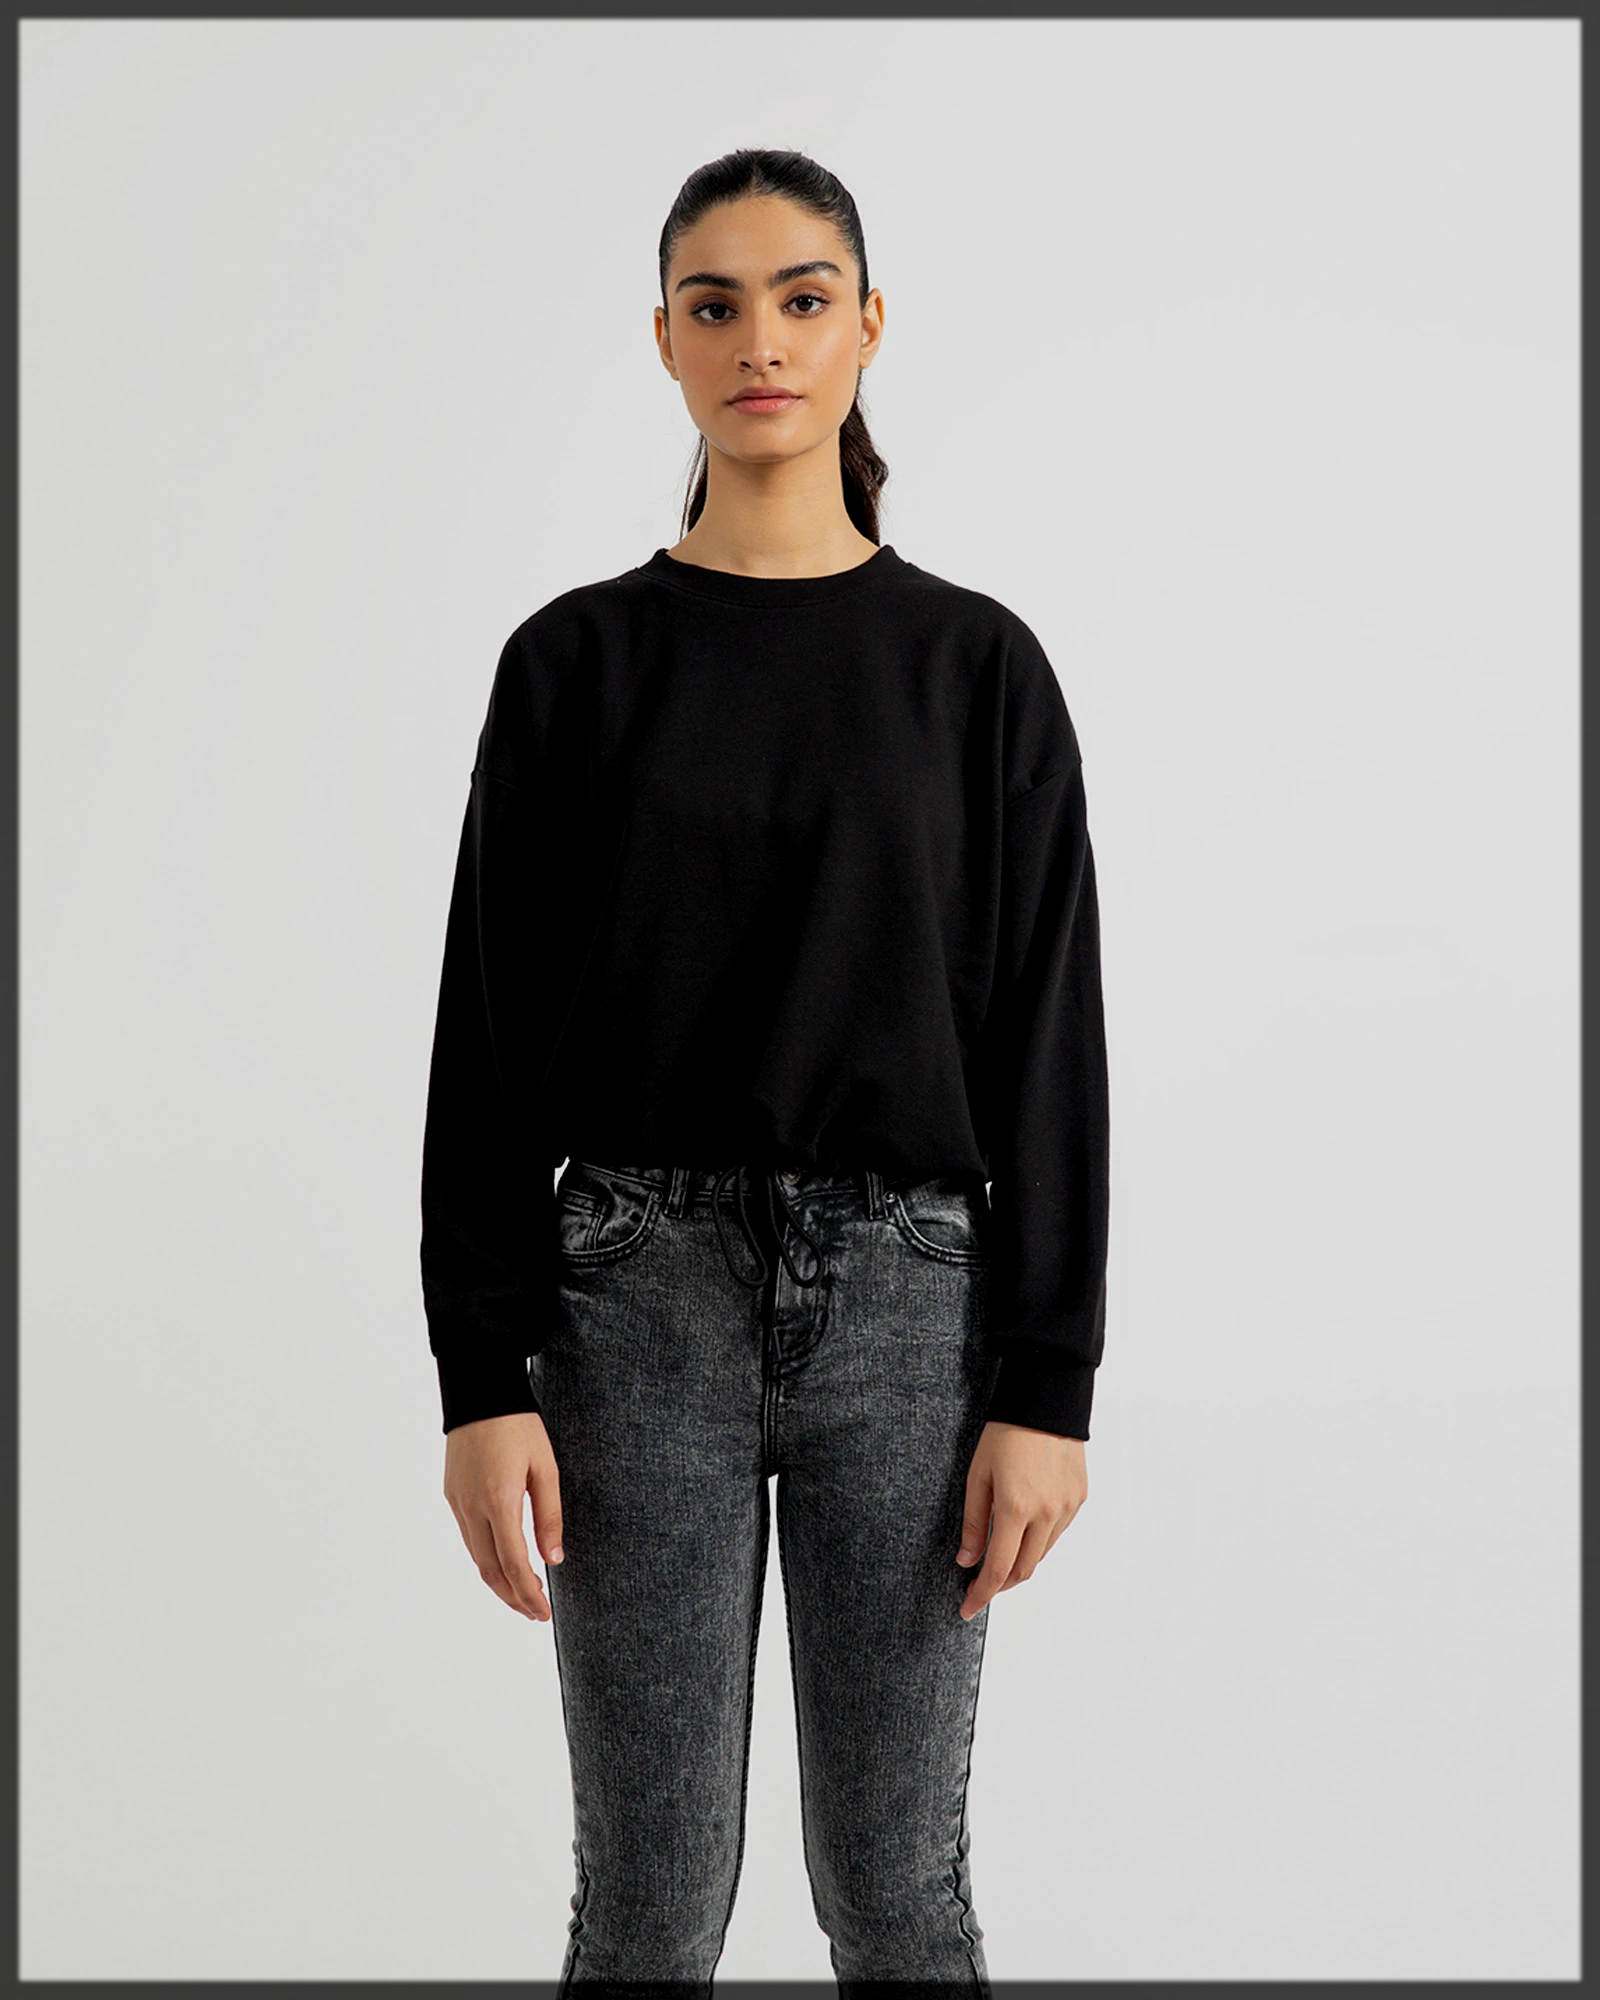 outfitters sweatshirts collection